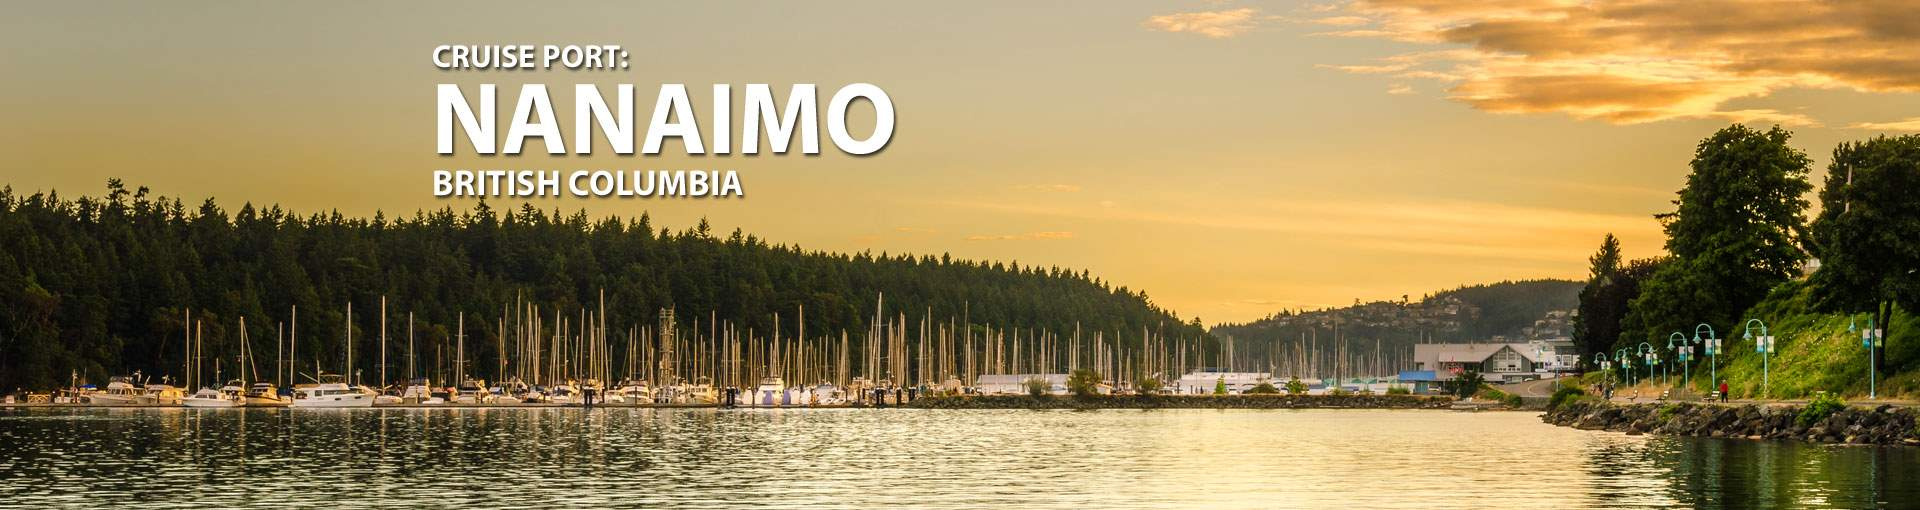 Cruises to Nanaimo British Columbia